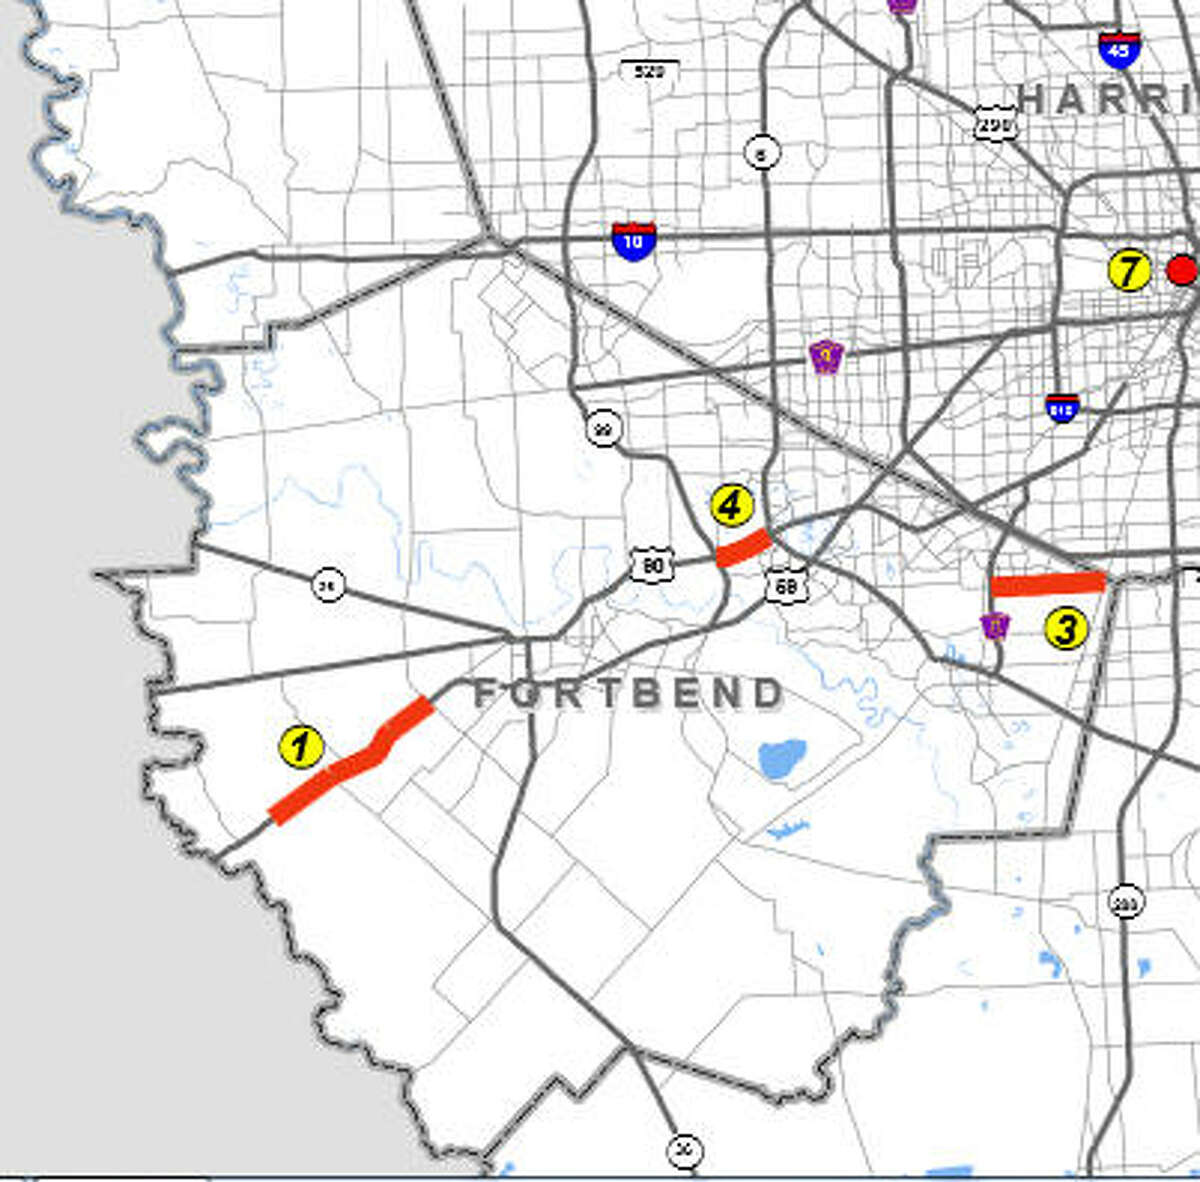 Three projects to increase road capacity in Fort Bend County are on the Houston-Galveston Area Council's list of projects to be implemented with Proposition 1 funding. They are: U.S. 59 from west of Spur 10 to Darst Road, FM 2234 from Fort Bend Parkway to FM 521, and U.S. 90A from Texas 99 to Texas 6.